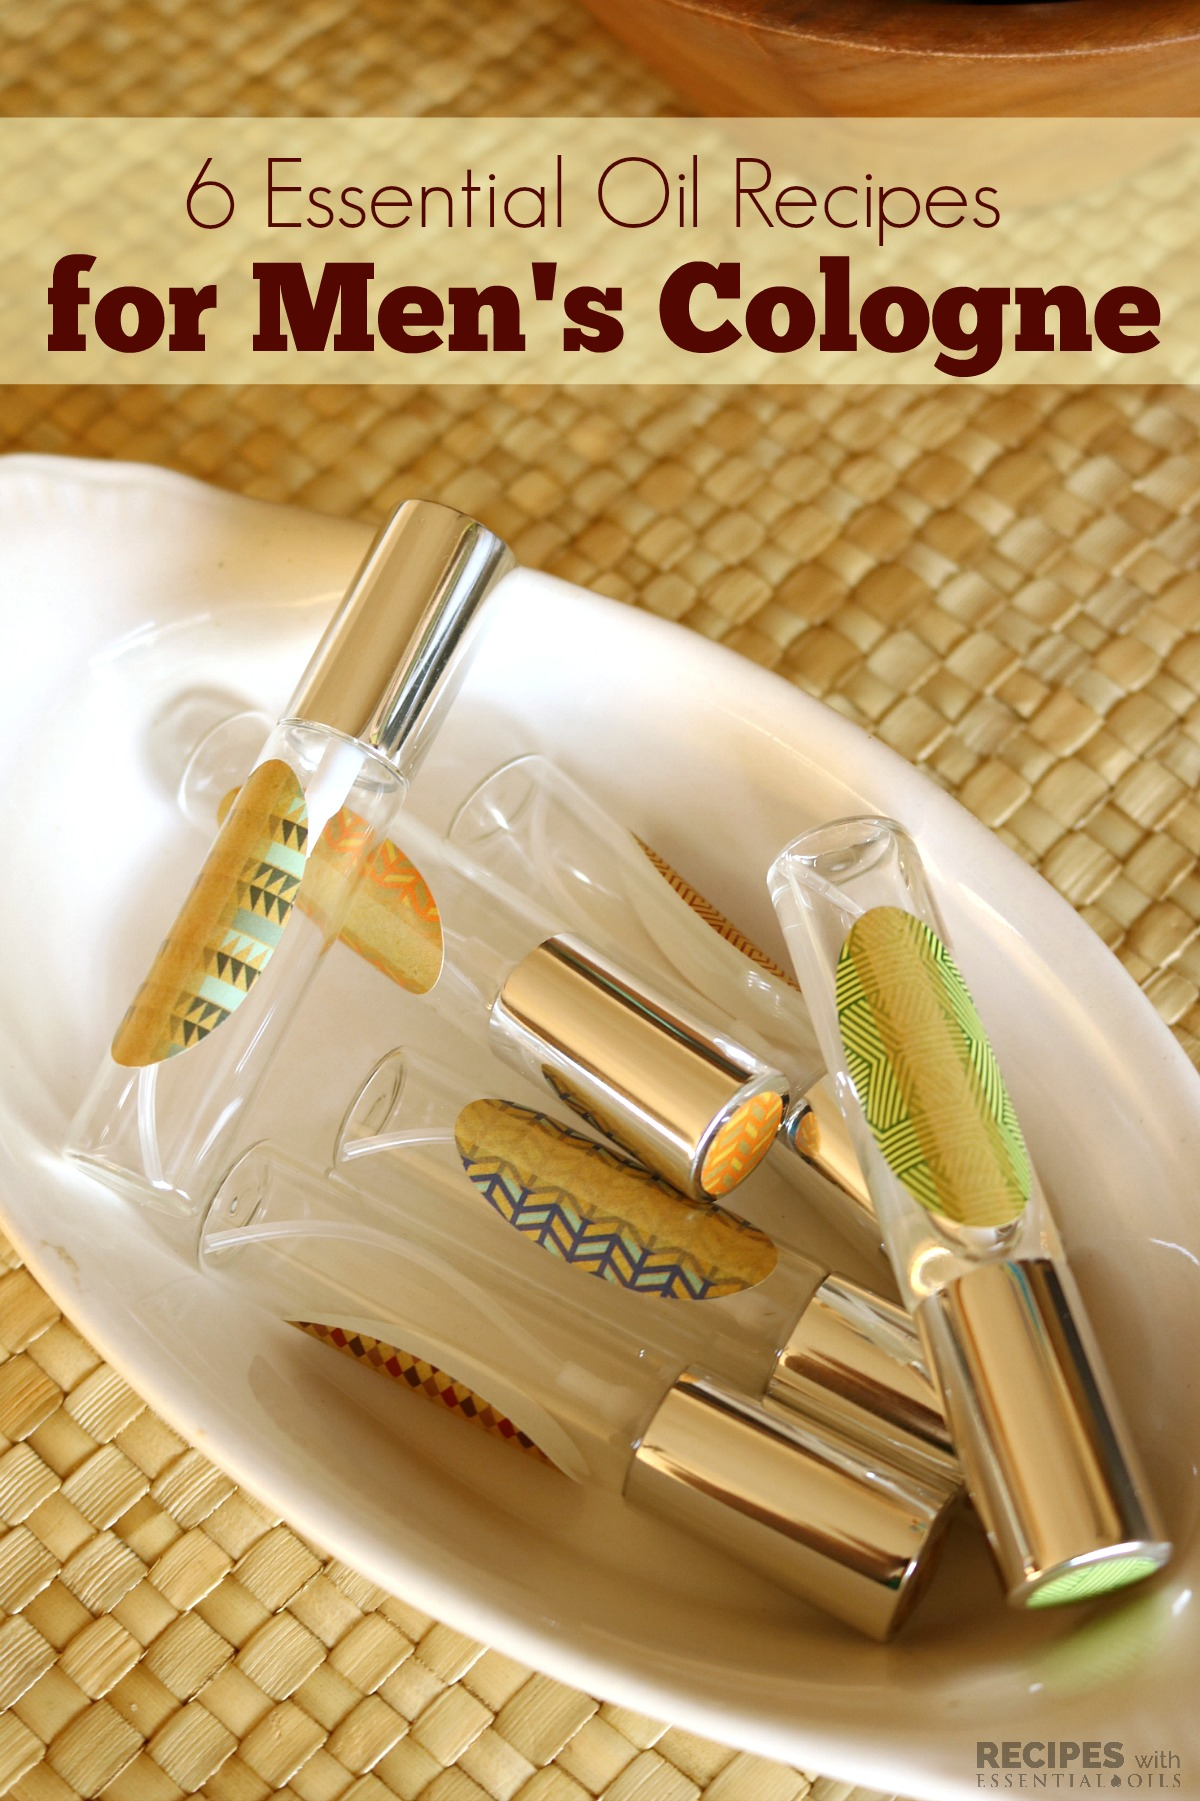 6 essential oil recipes for mens cologne recipes with essential oils 6 essential oil recipes for mens cologne from recipeswithessentialoils fandeluxe Images